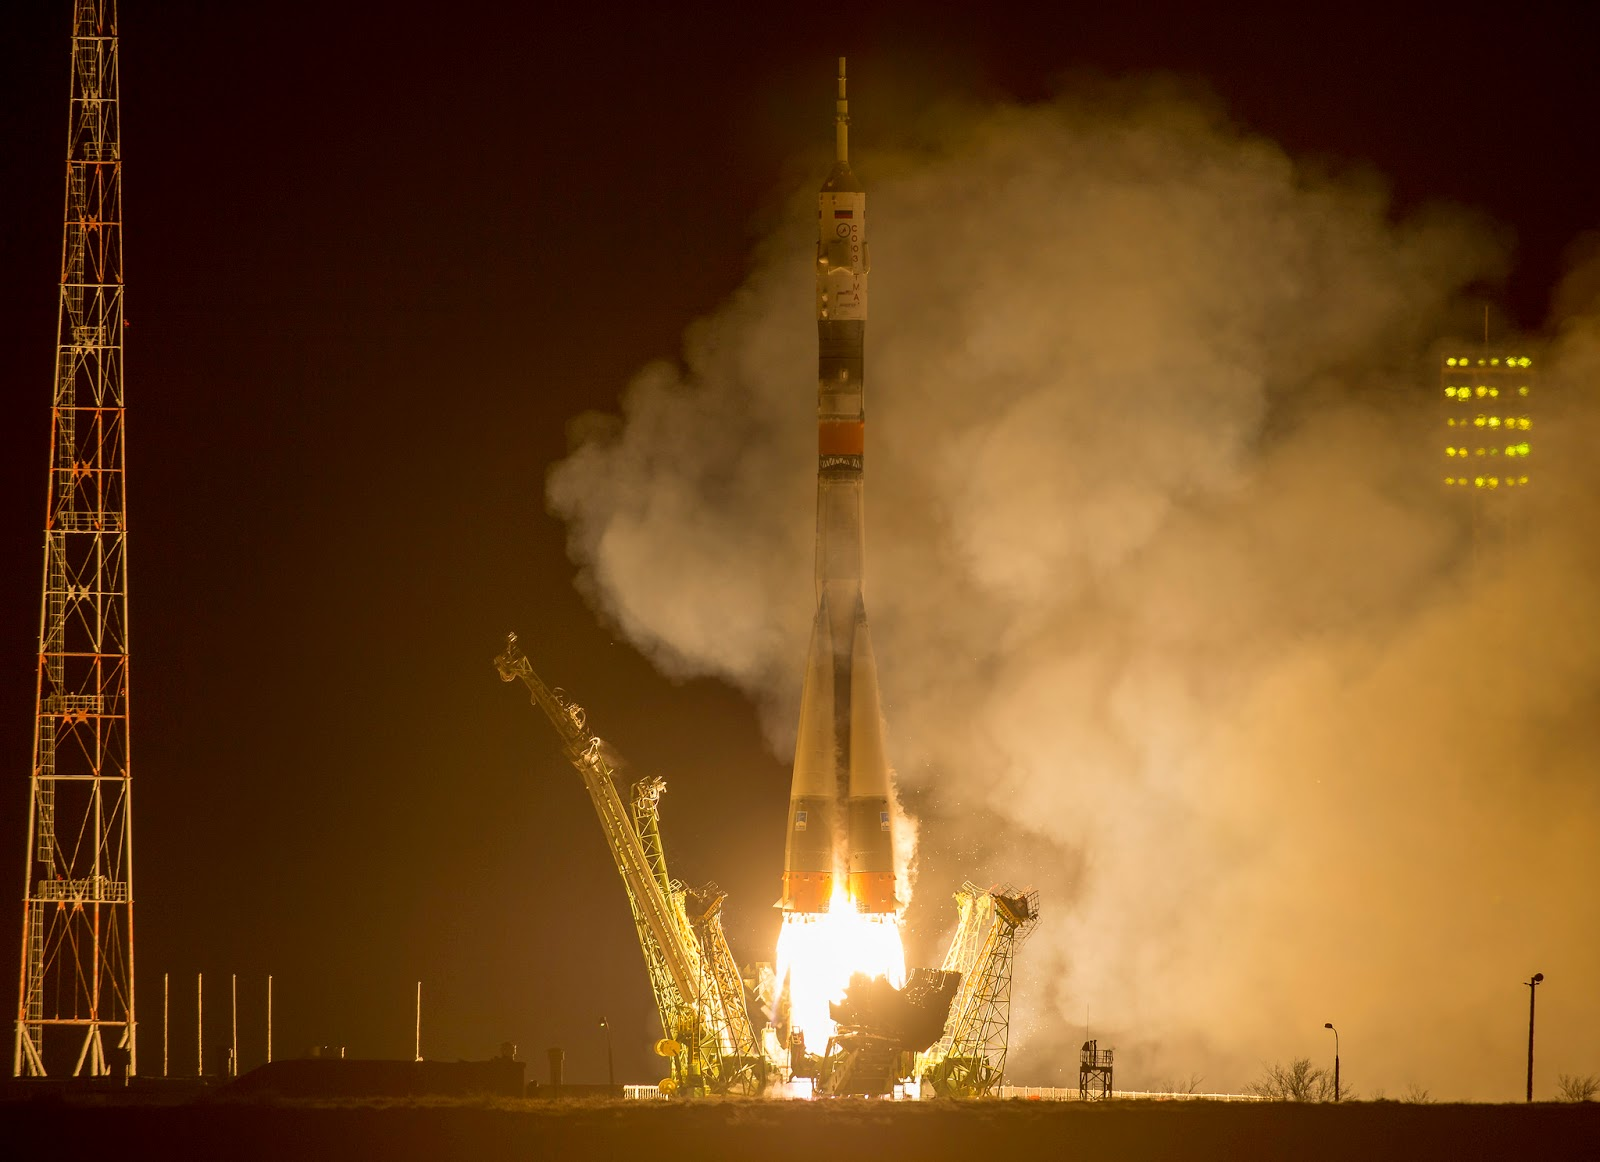 The Soyuz TMA-16M spacecraft is seen as it launches to the International Space Station with Expedition 43 NASA Astronaut Scott Kelly, Russian Cosmonauts Mikhail Kornienko, and Gennady Padalka of the Russian Federal Space Agency (Roscosmos) onboard Saturday, March 28, 2015, Kazakh time (March 27 Eastern time) from the Baikonur Cosmodrome in Kazakhstan. As the one-year crew, Kelly and Kornienko will return to Earth on Soyuz TMA-18M in March 2016. Photo Credit (NASA/Bill Ingalls)